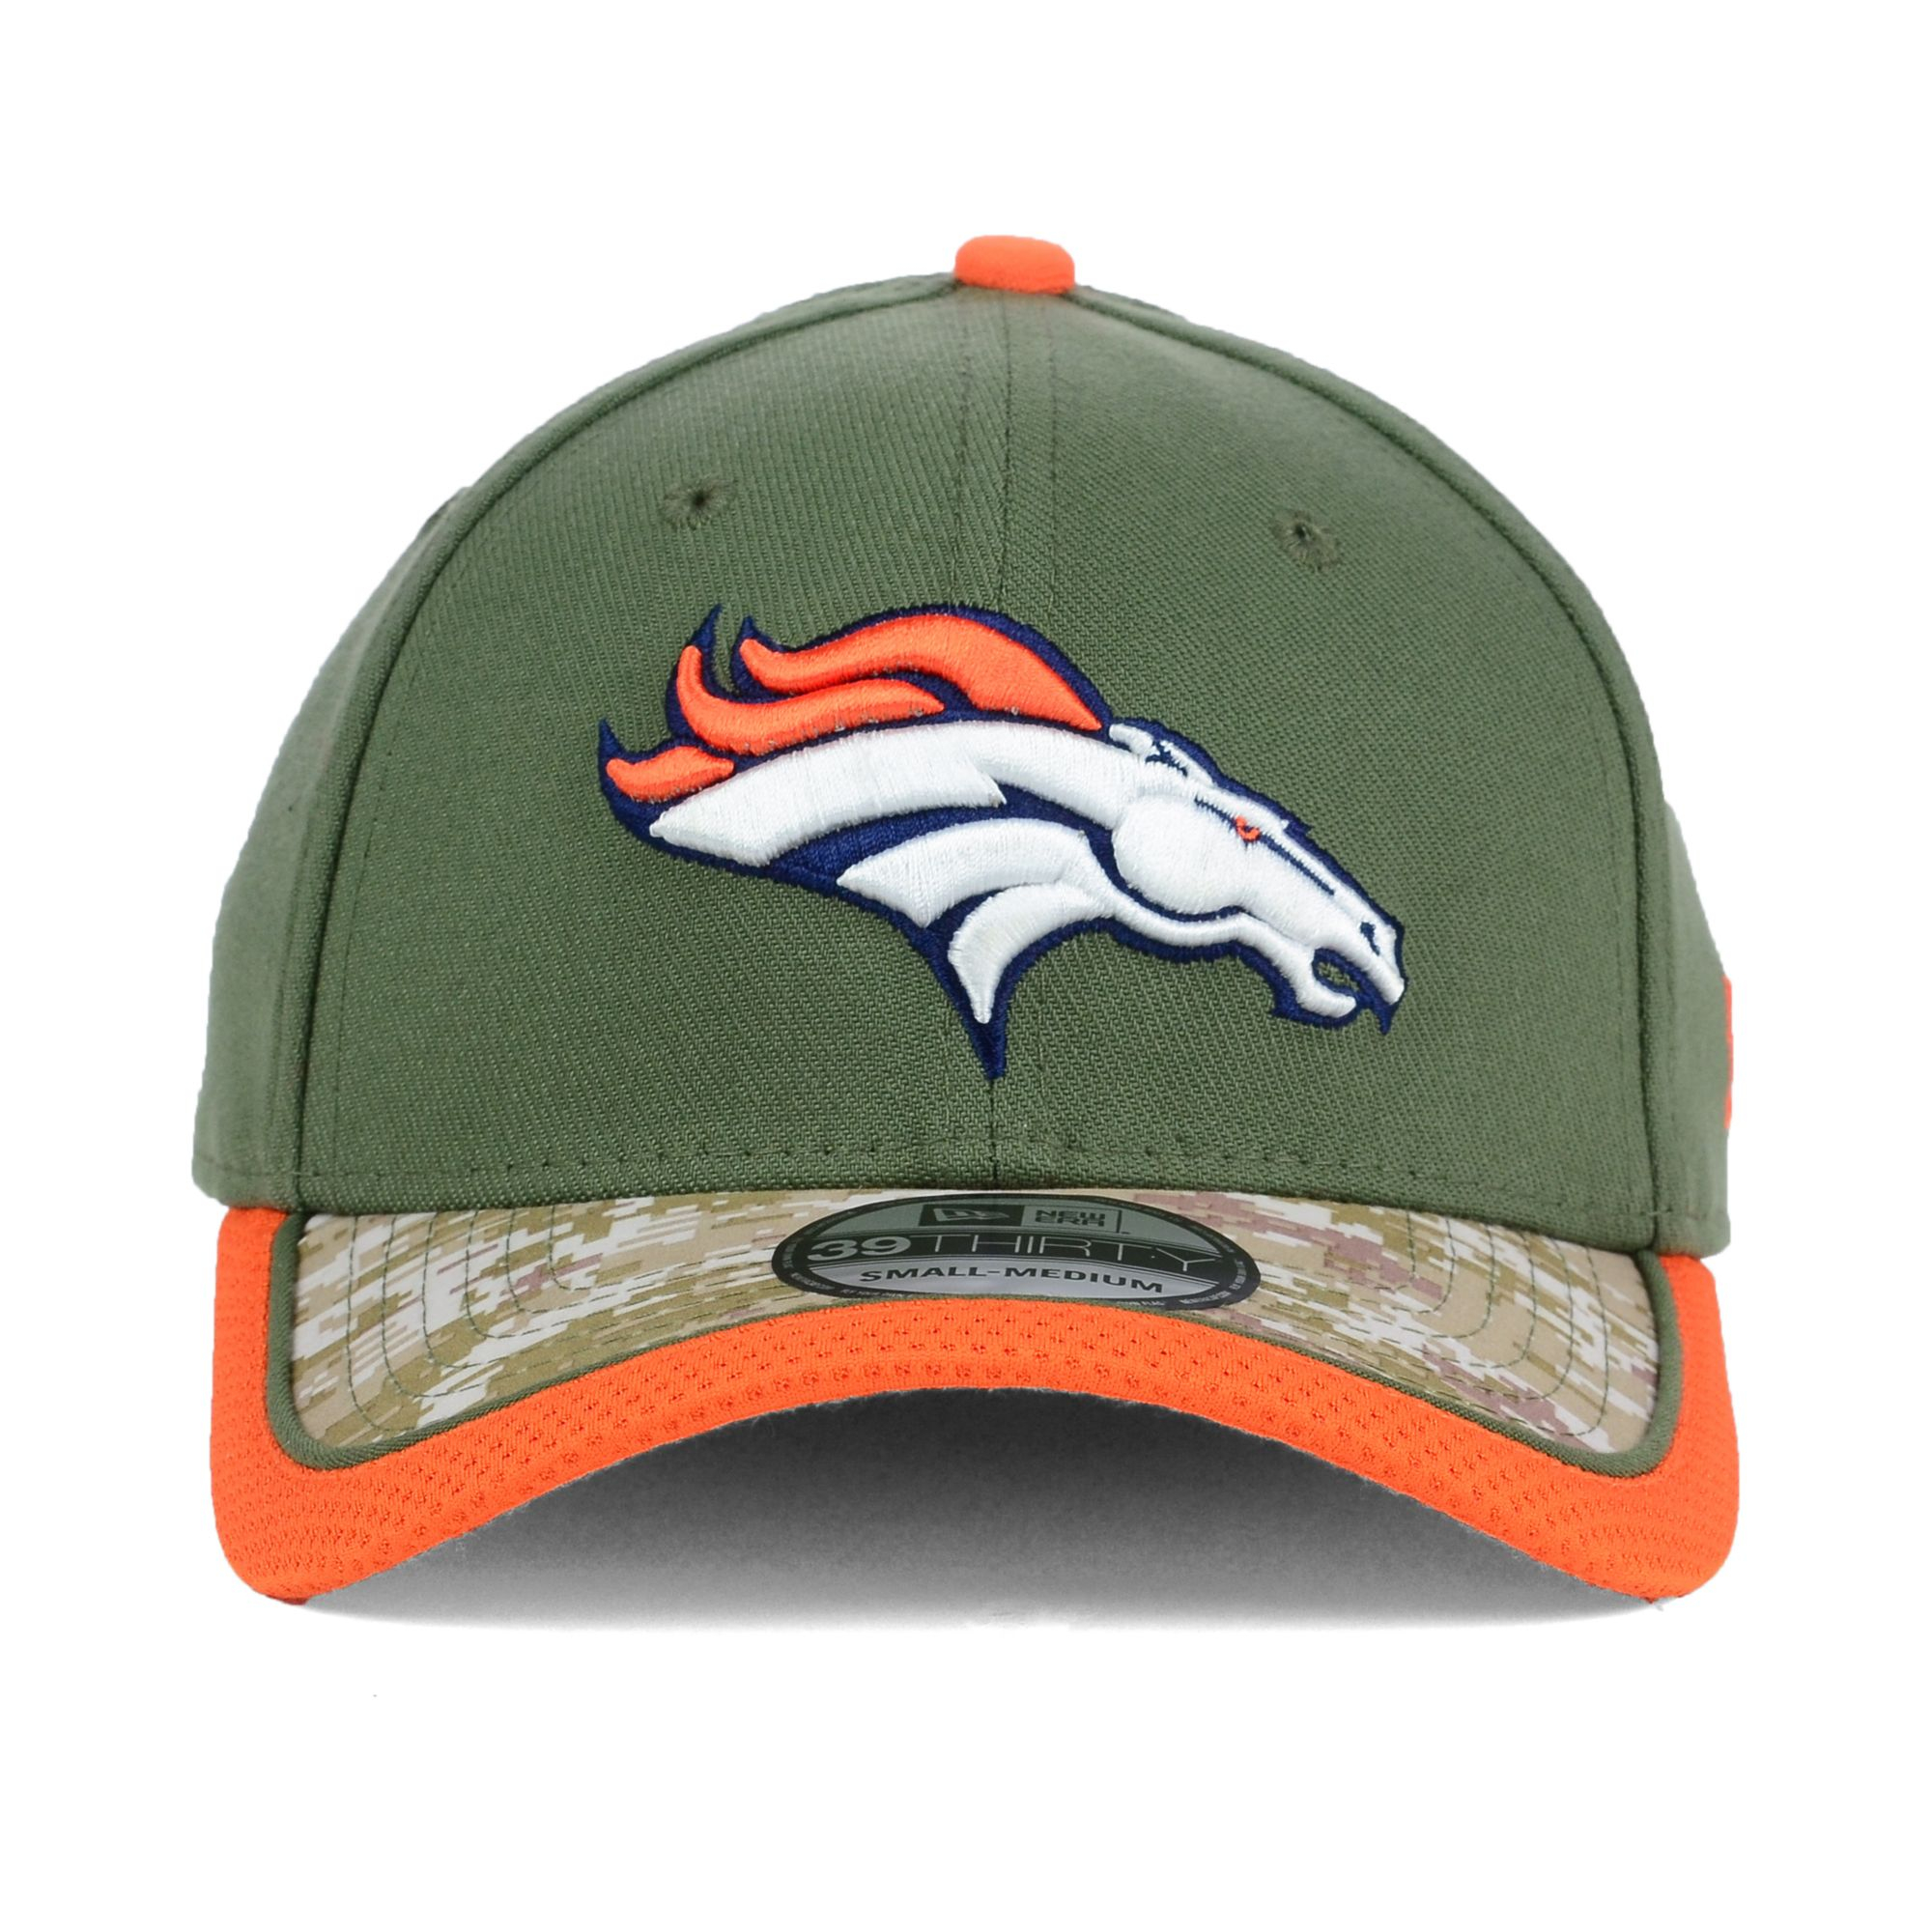 new concept 652fe 430f1 ... hat a120c 8528a norway lyst ktz denver broncos salute to service  39thirty cap in green c7d4c 0bc3e ...